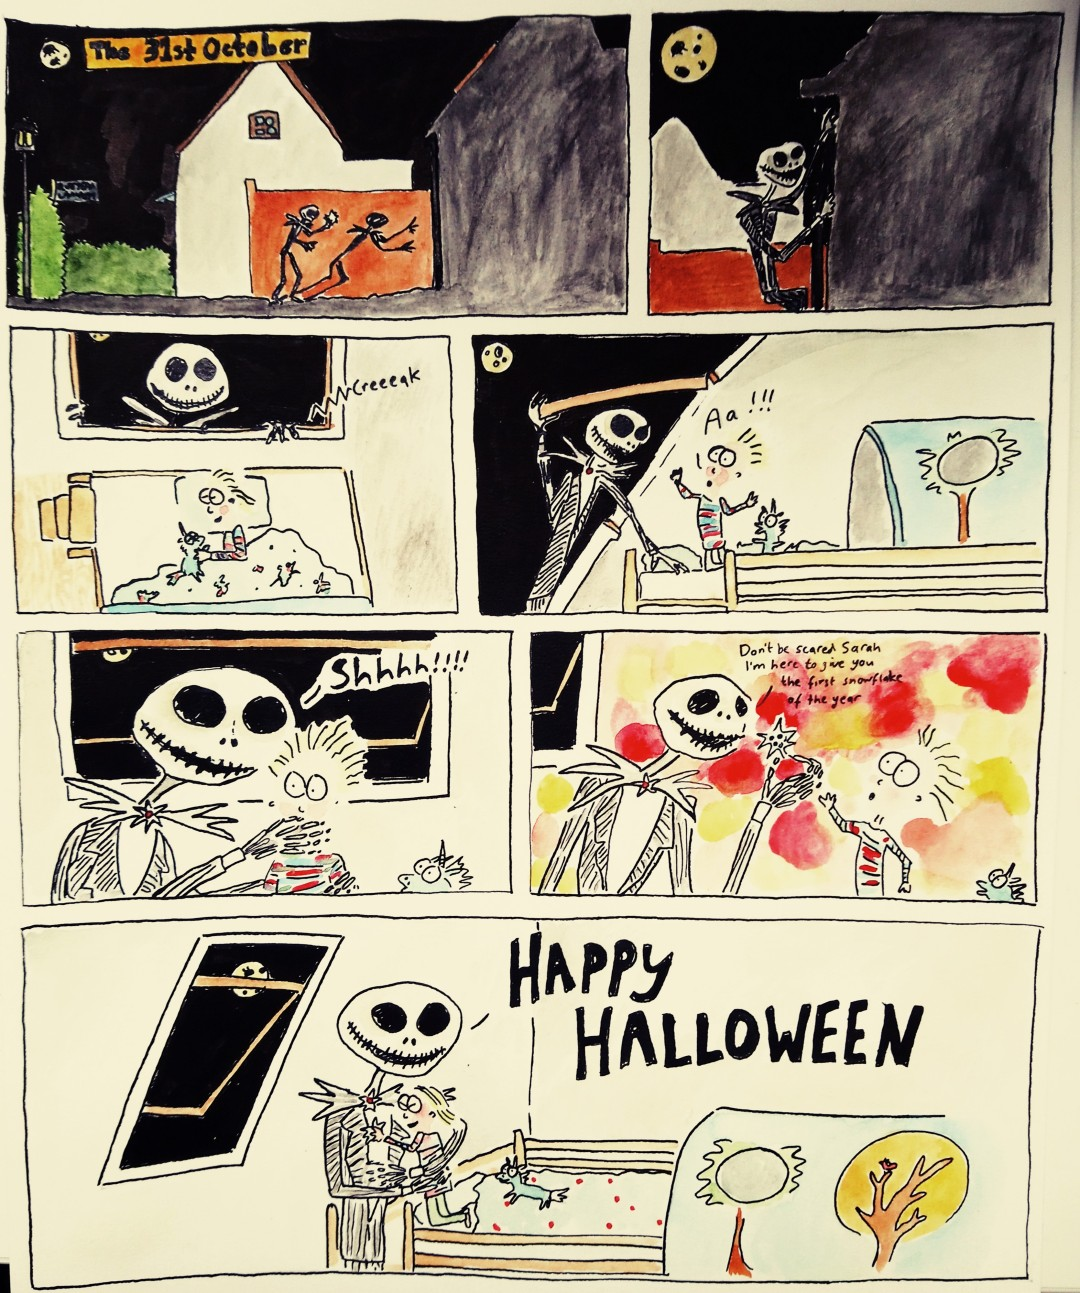 Final halloween cartoon